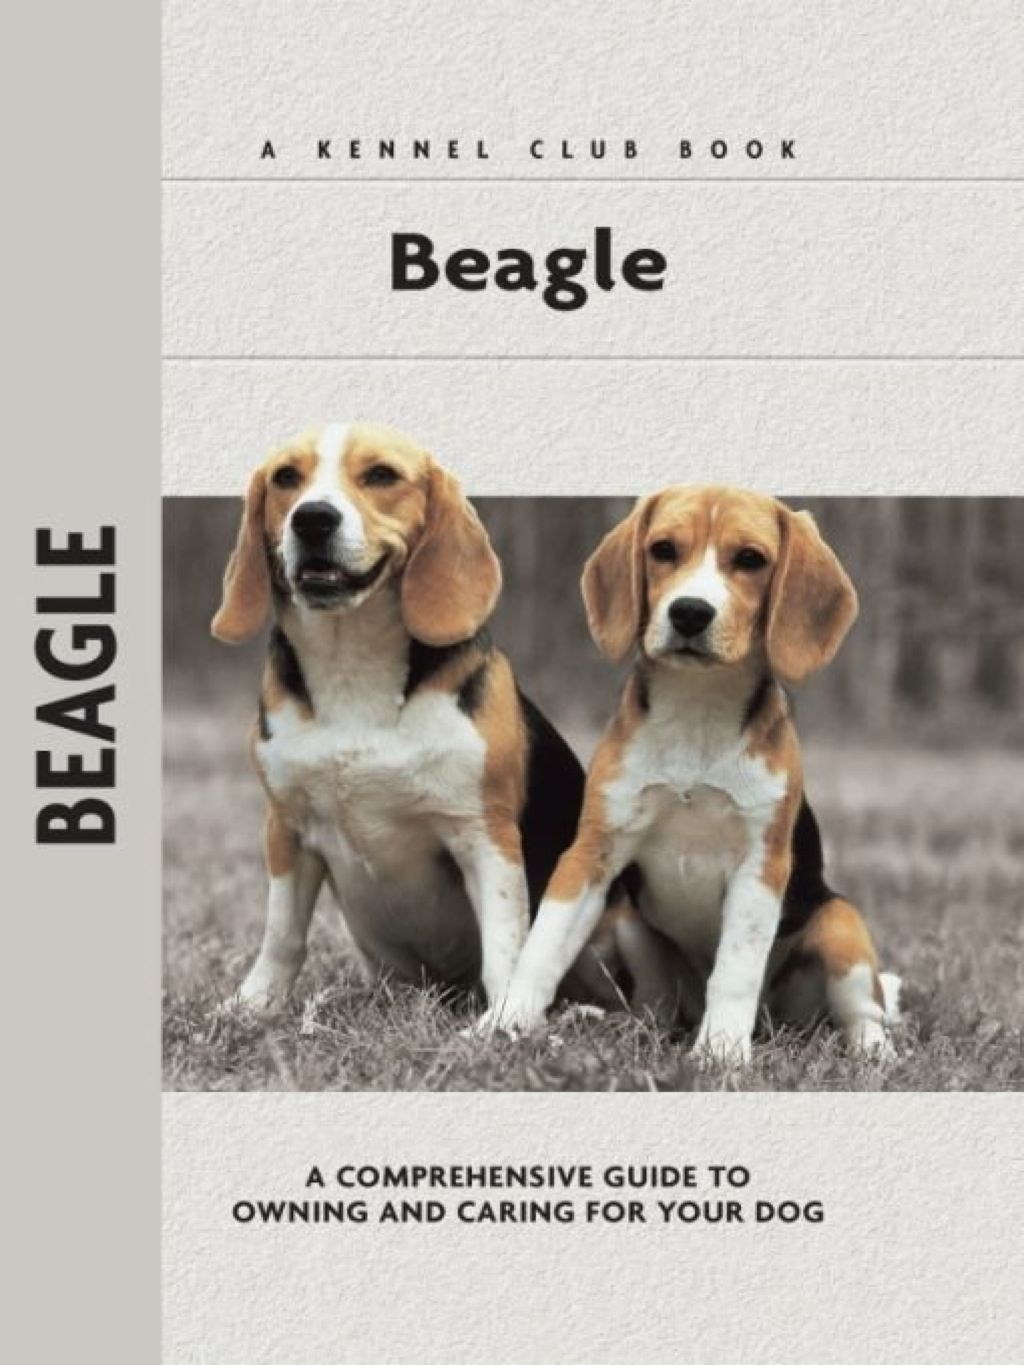 Beagle Ebook In 2019 Dog Books Beagle Dogs